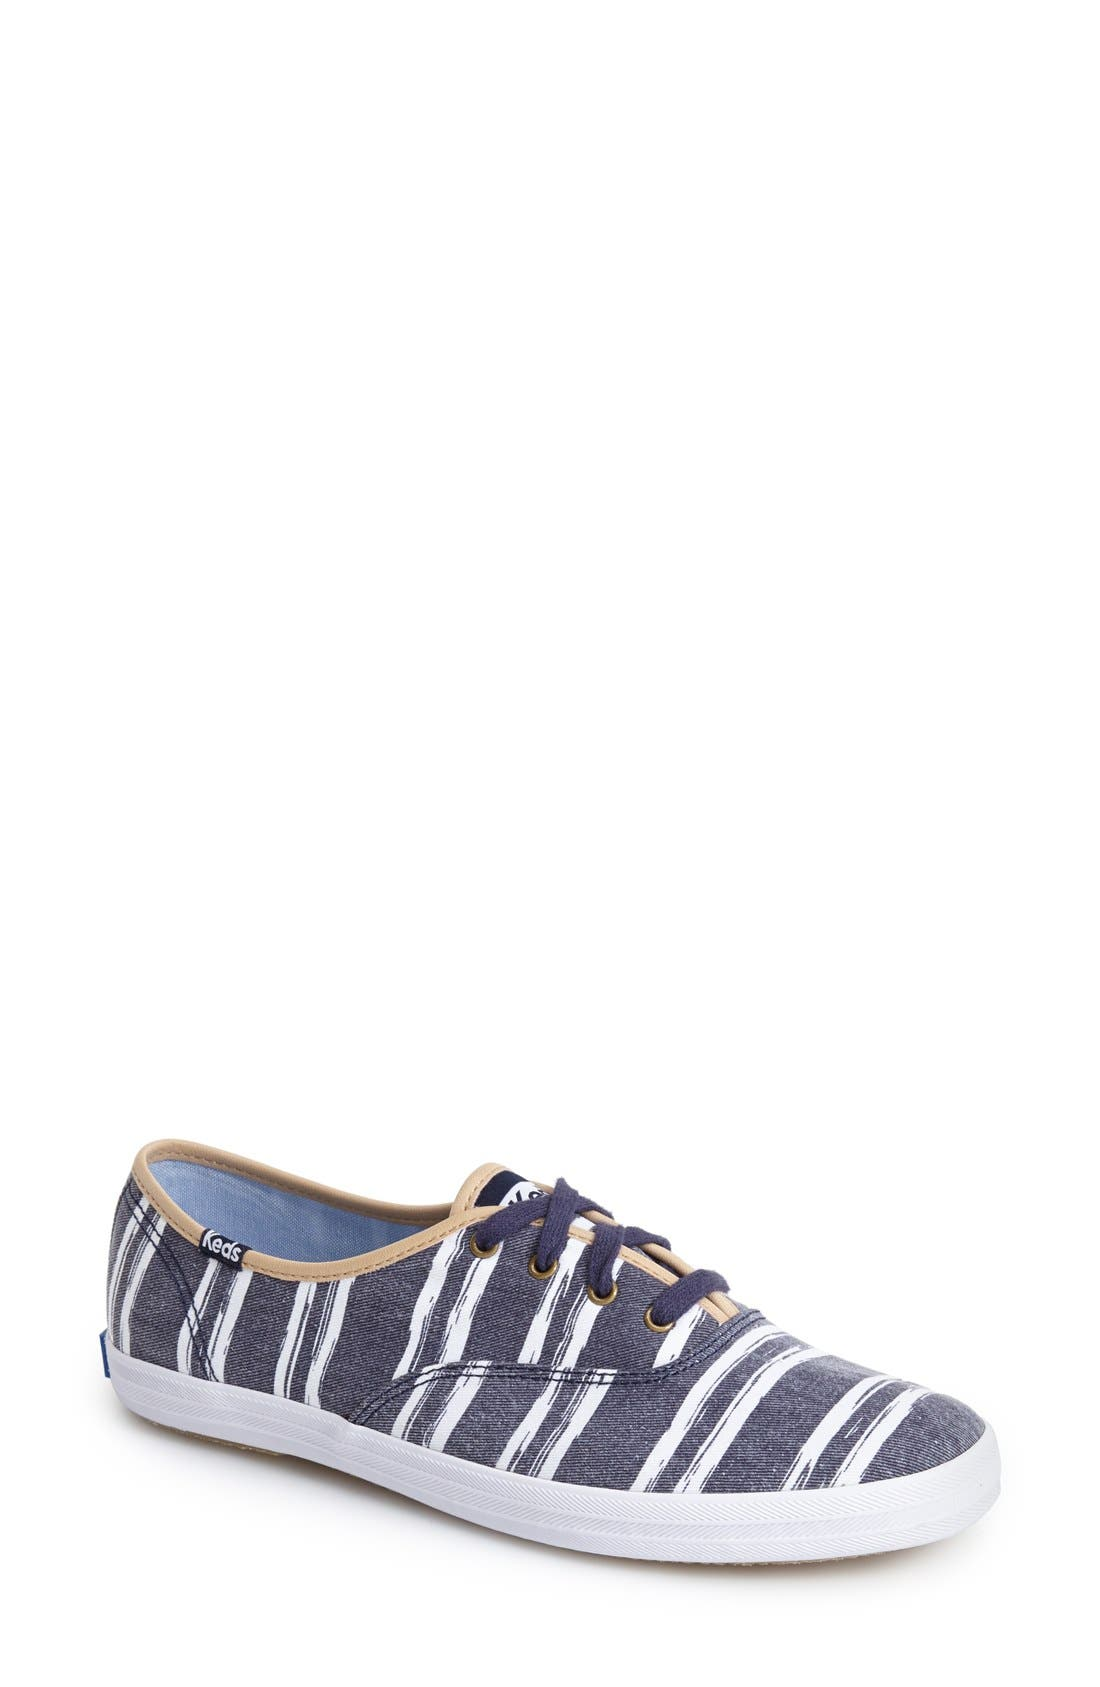 Main Image - Keds® 'Champion - Washed Beach Stripe' Sneaker (Women)